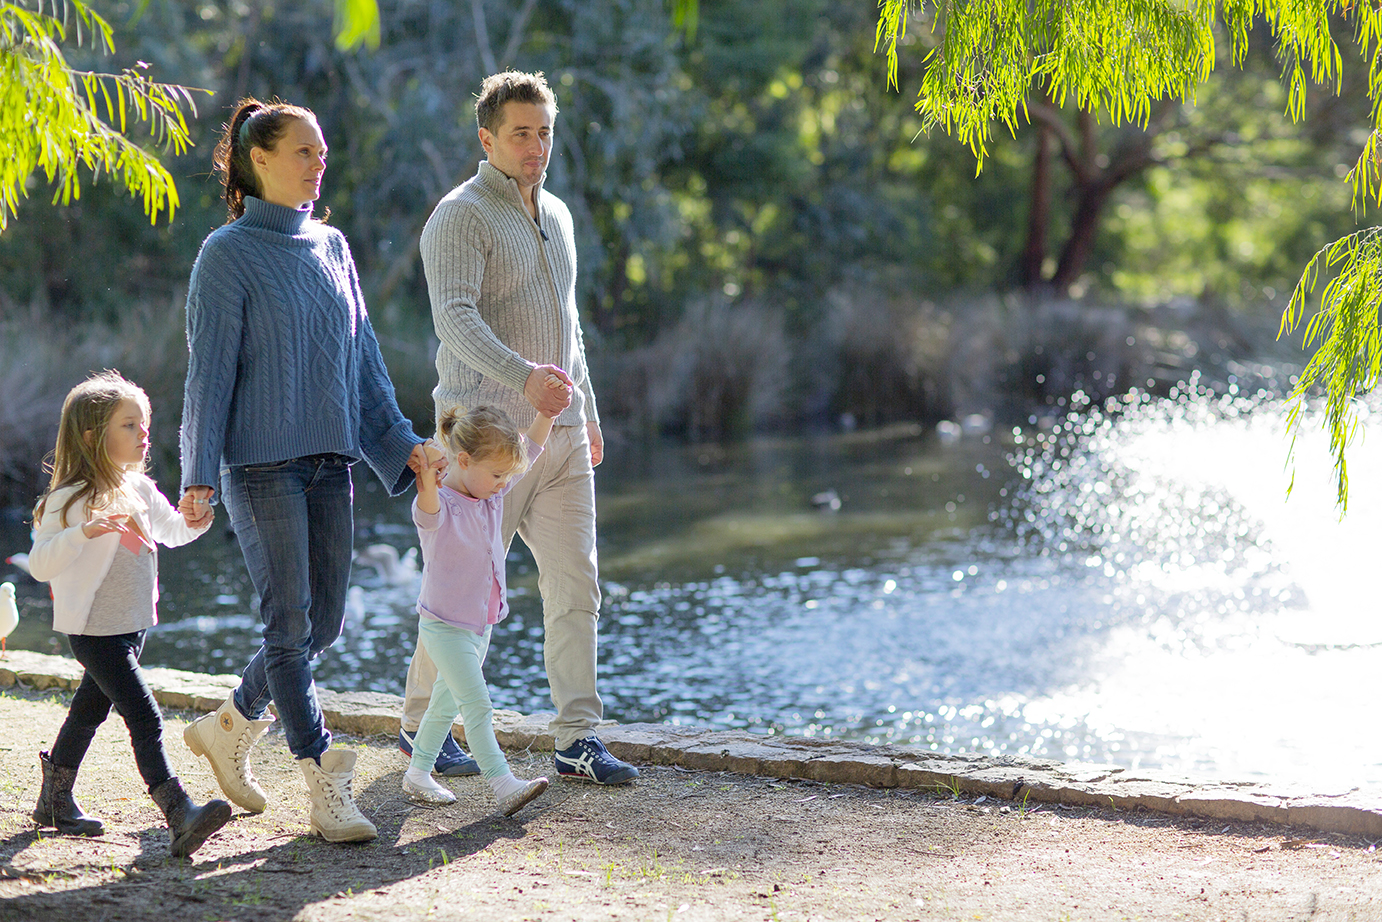 Discover a new walk in Frankston City within your 5km!